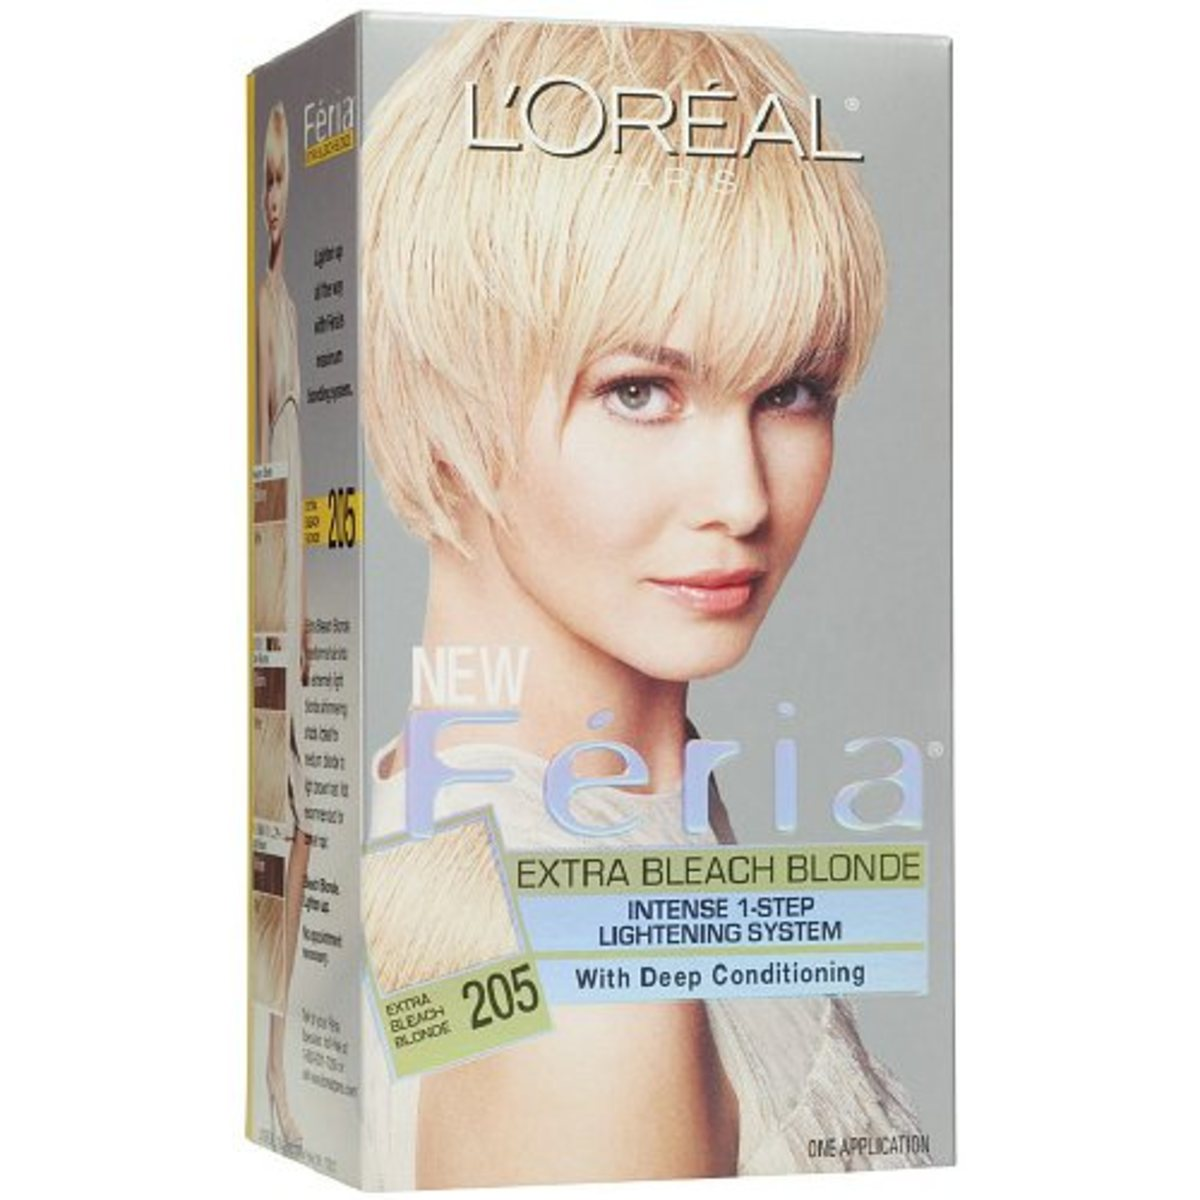 Recommended: Loreal Feria Extra Bleach Blonde 205. This is my favorite bleach kit. It's a great one-step treatment that took my hair from a medium brown to a very light yellow blond.